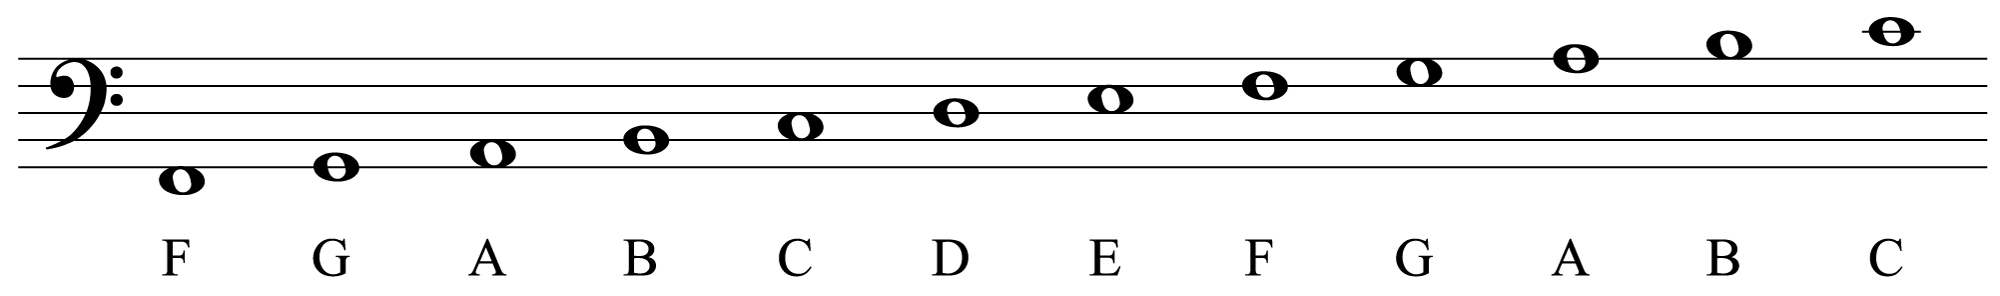 figure 312 notes on the bass clef staff